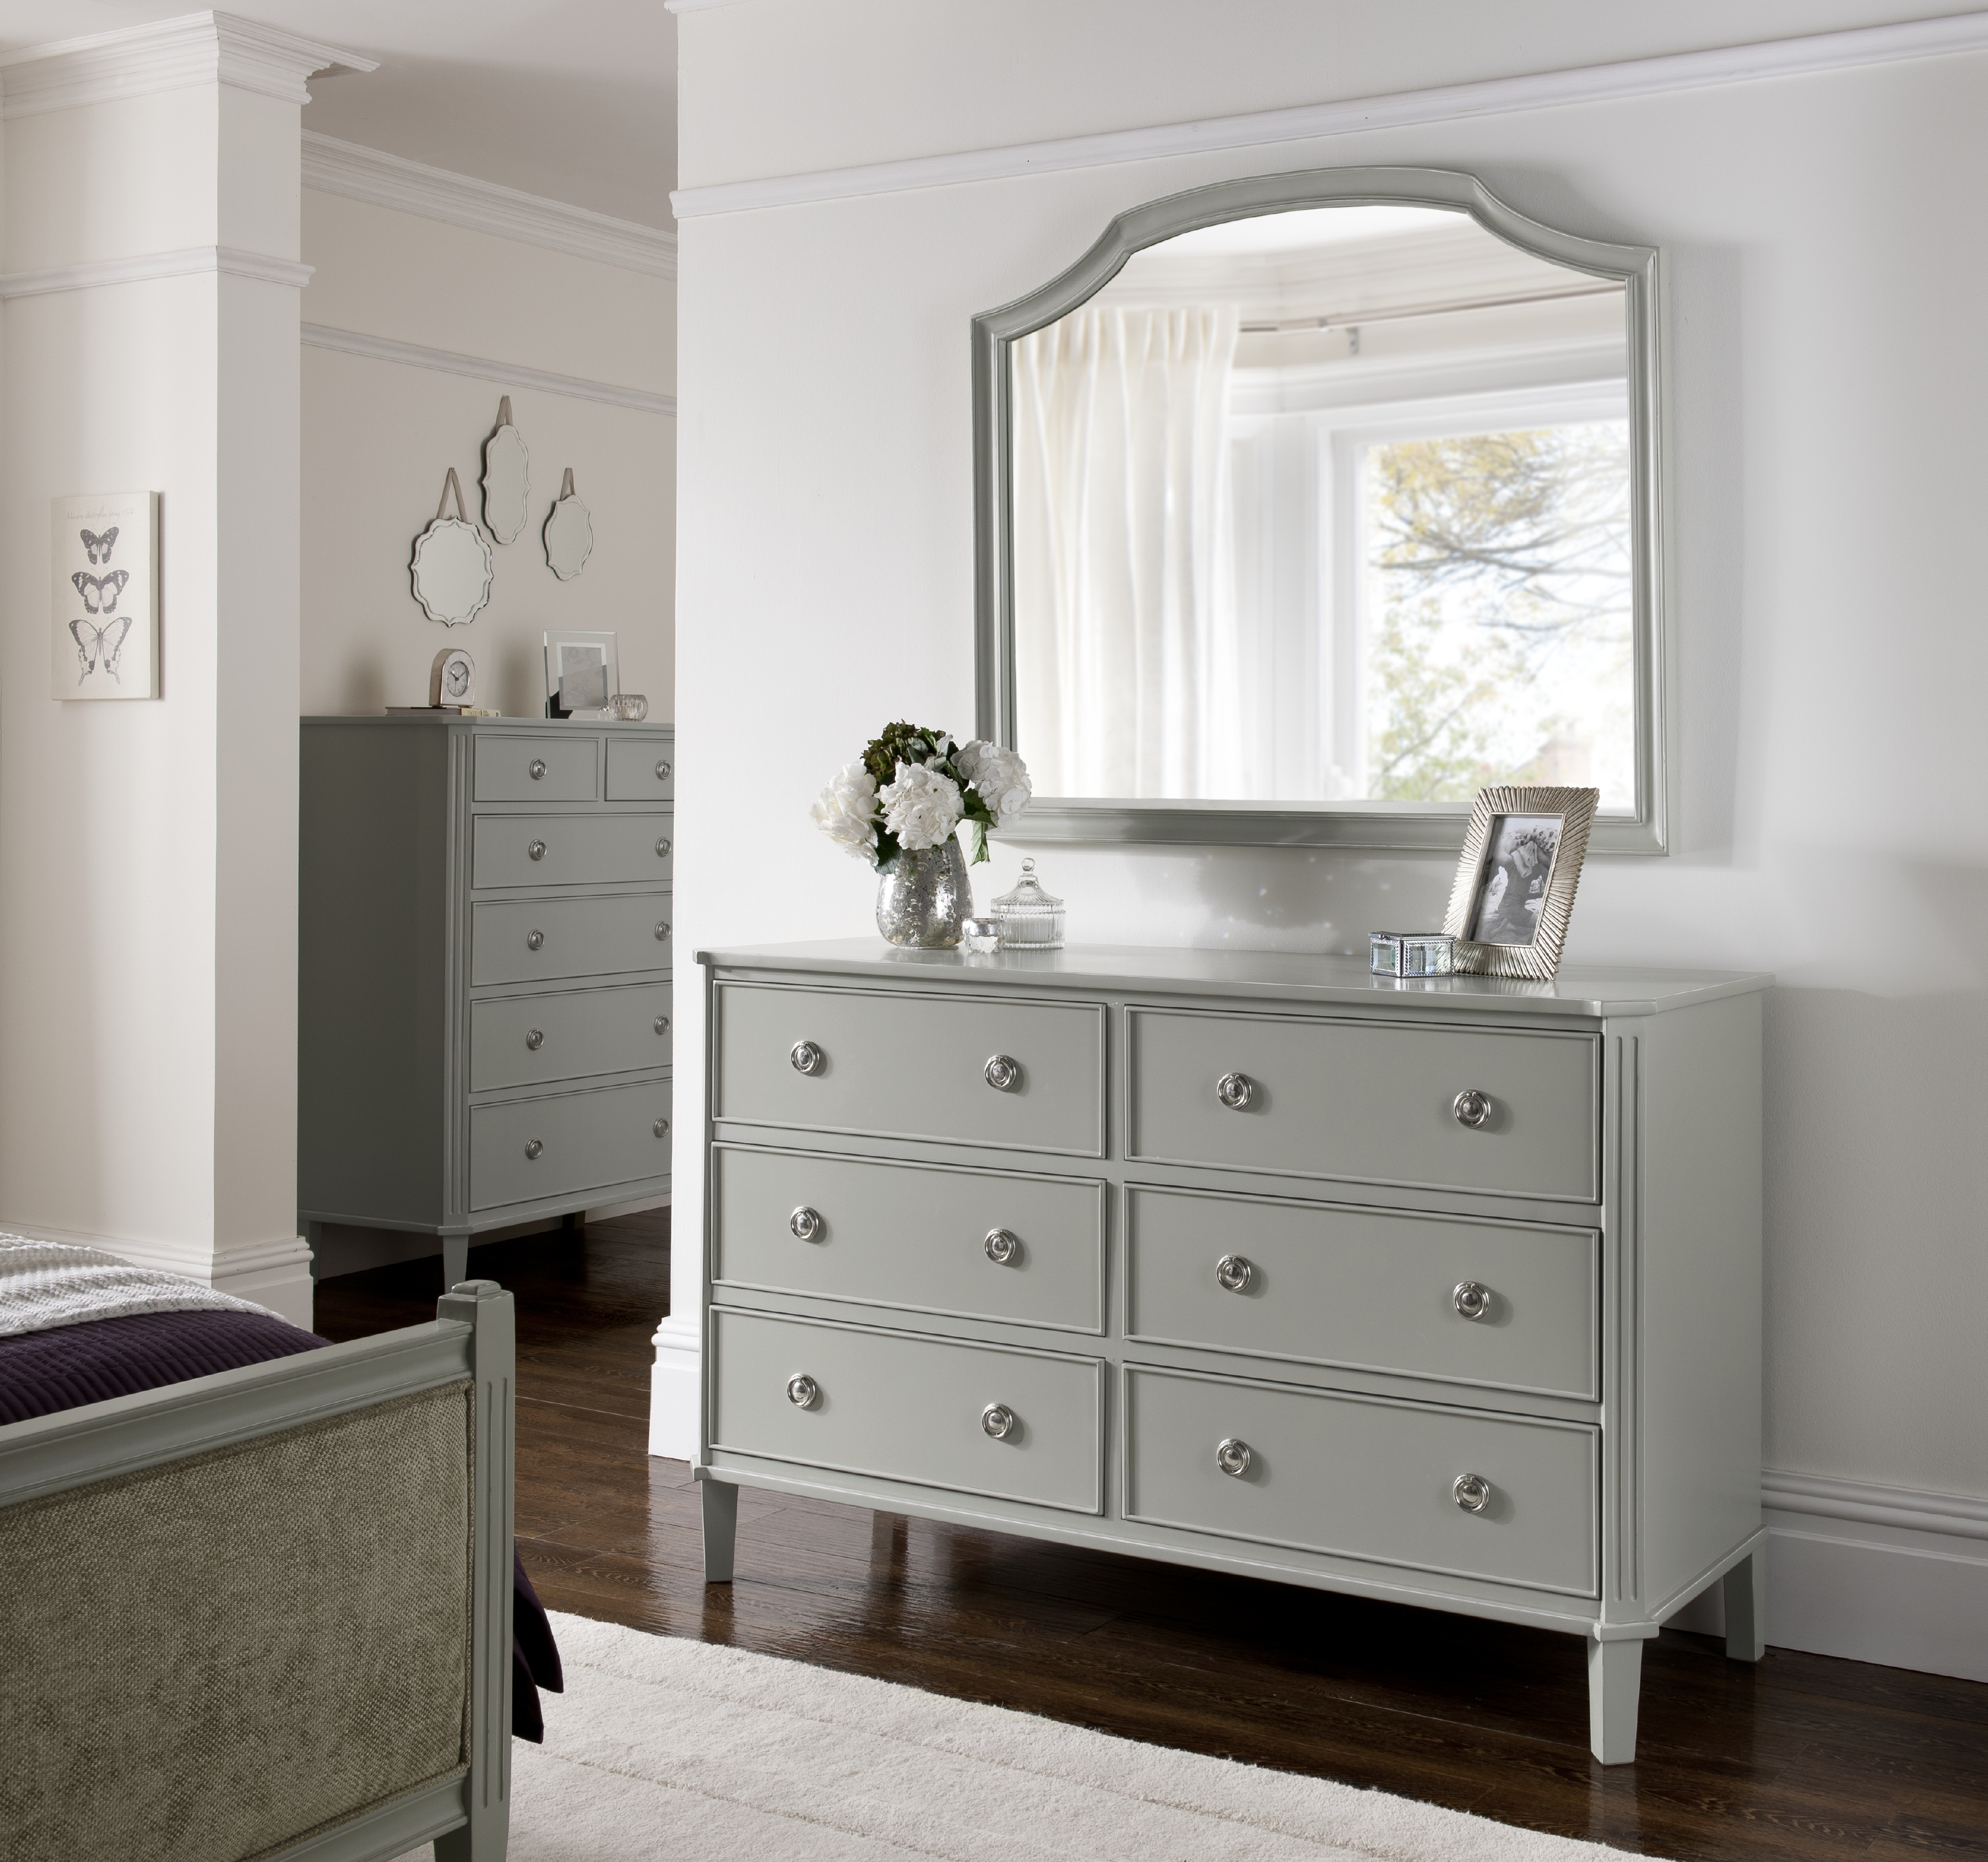 Dressing chest from the Elegance Bedroom Furniture Range